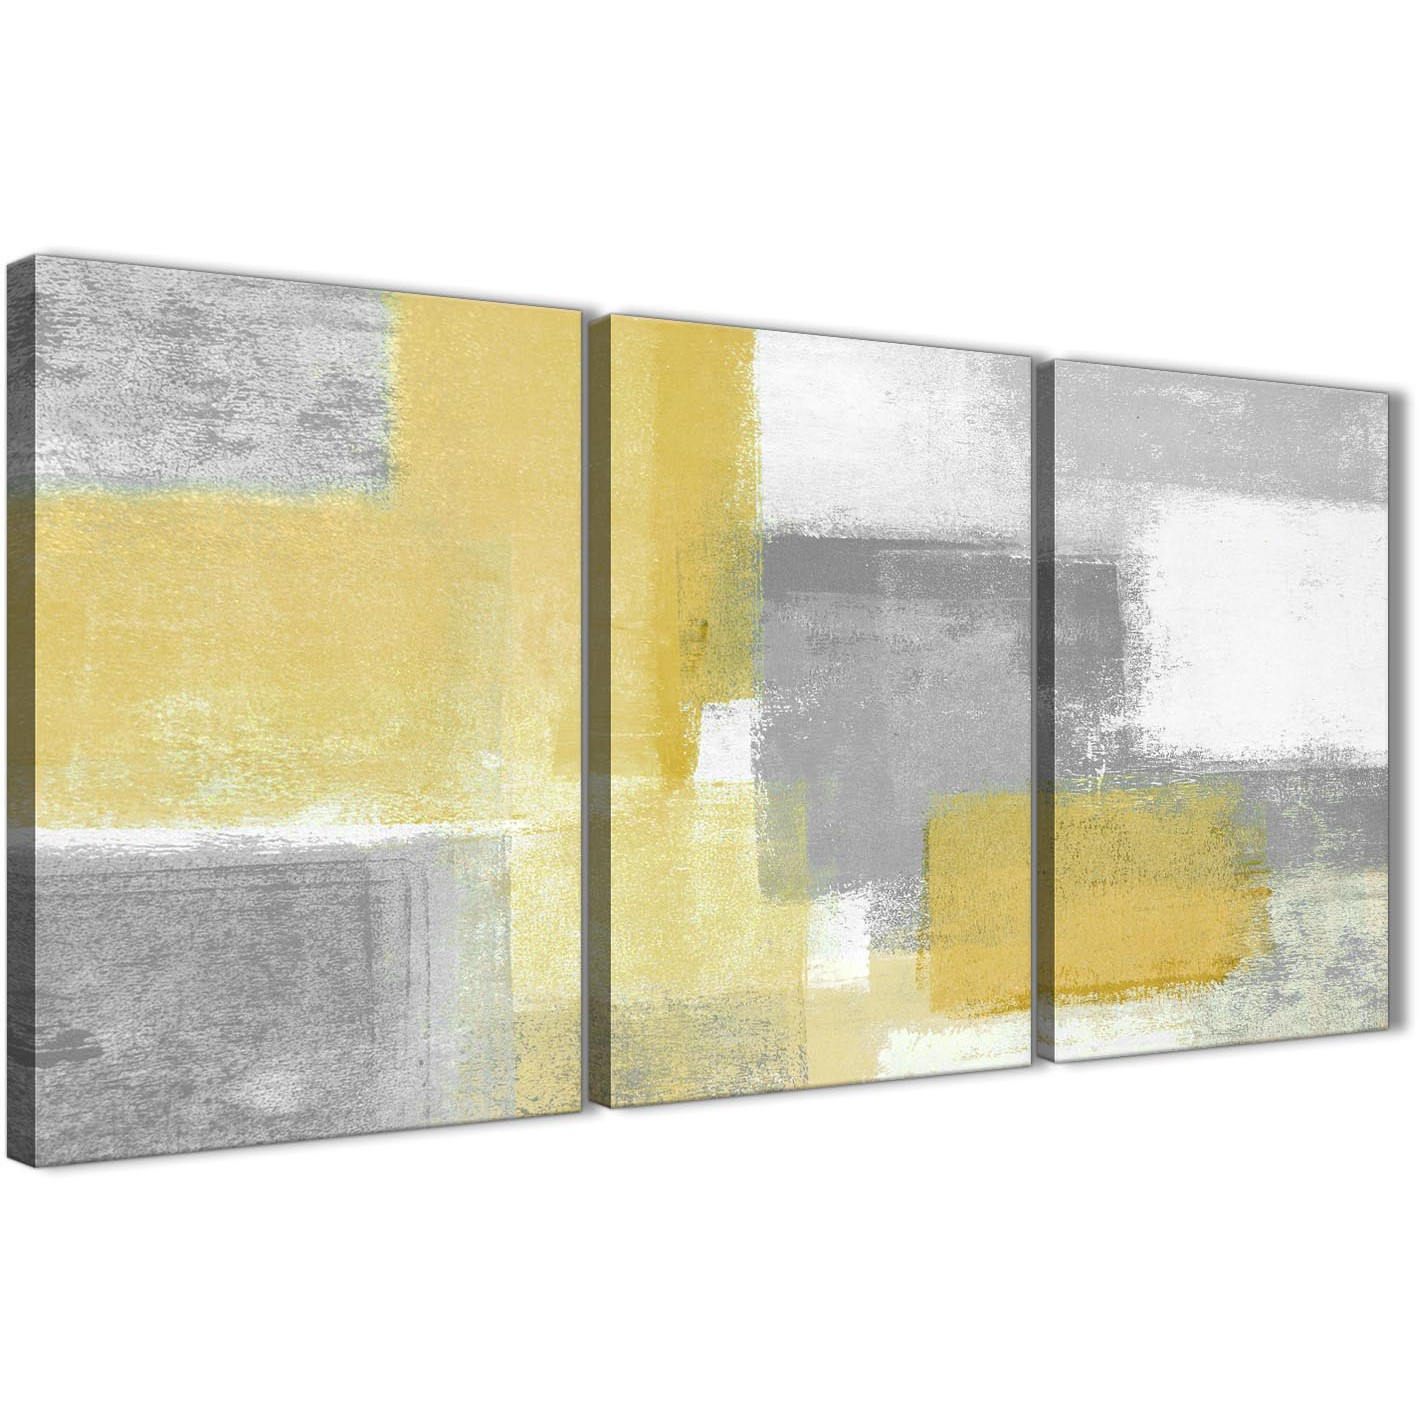 3 Panel Mustard Yellow Grey Kitchen Canvas Wall Art Decor - Abstract ...